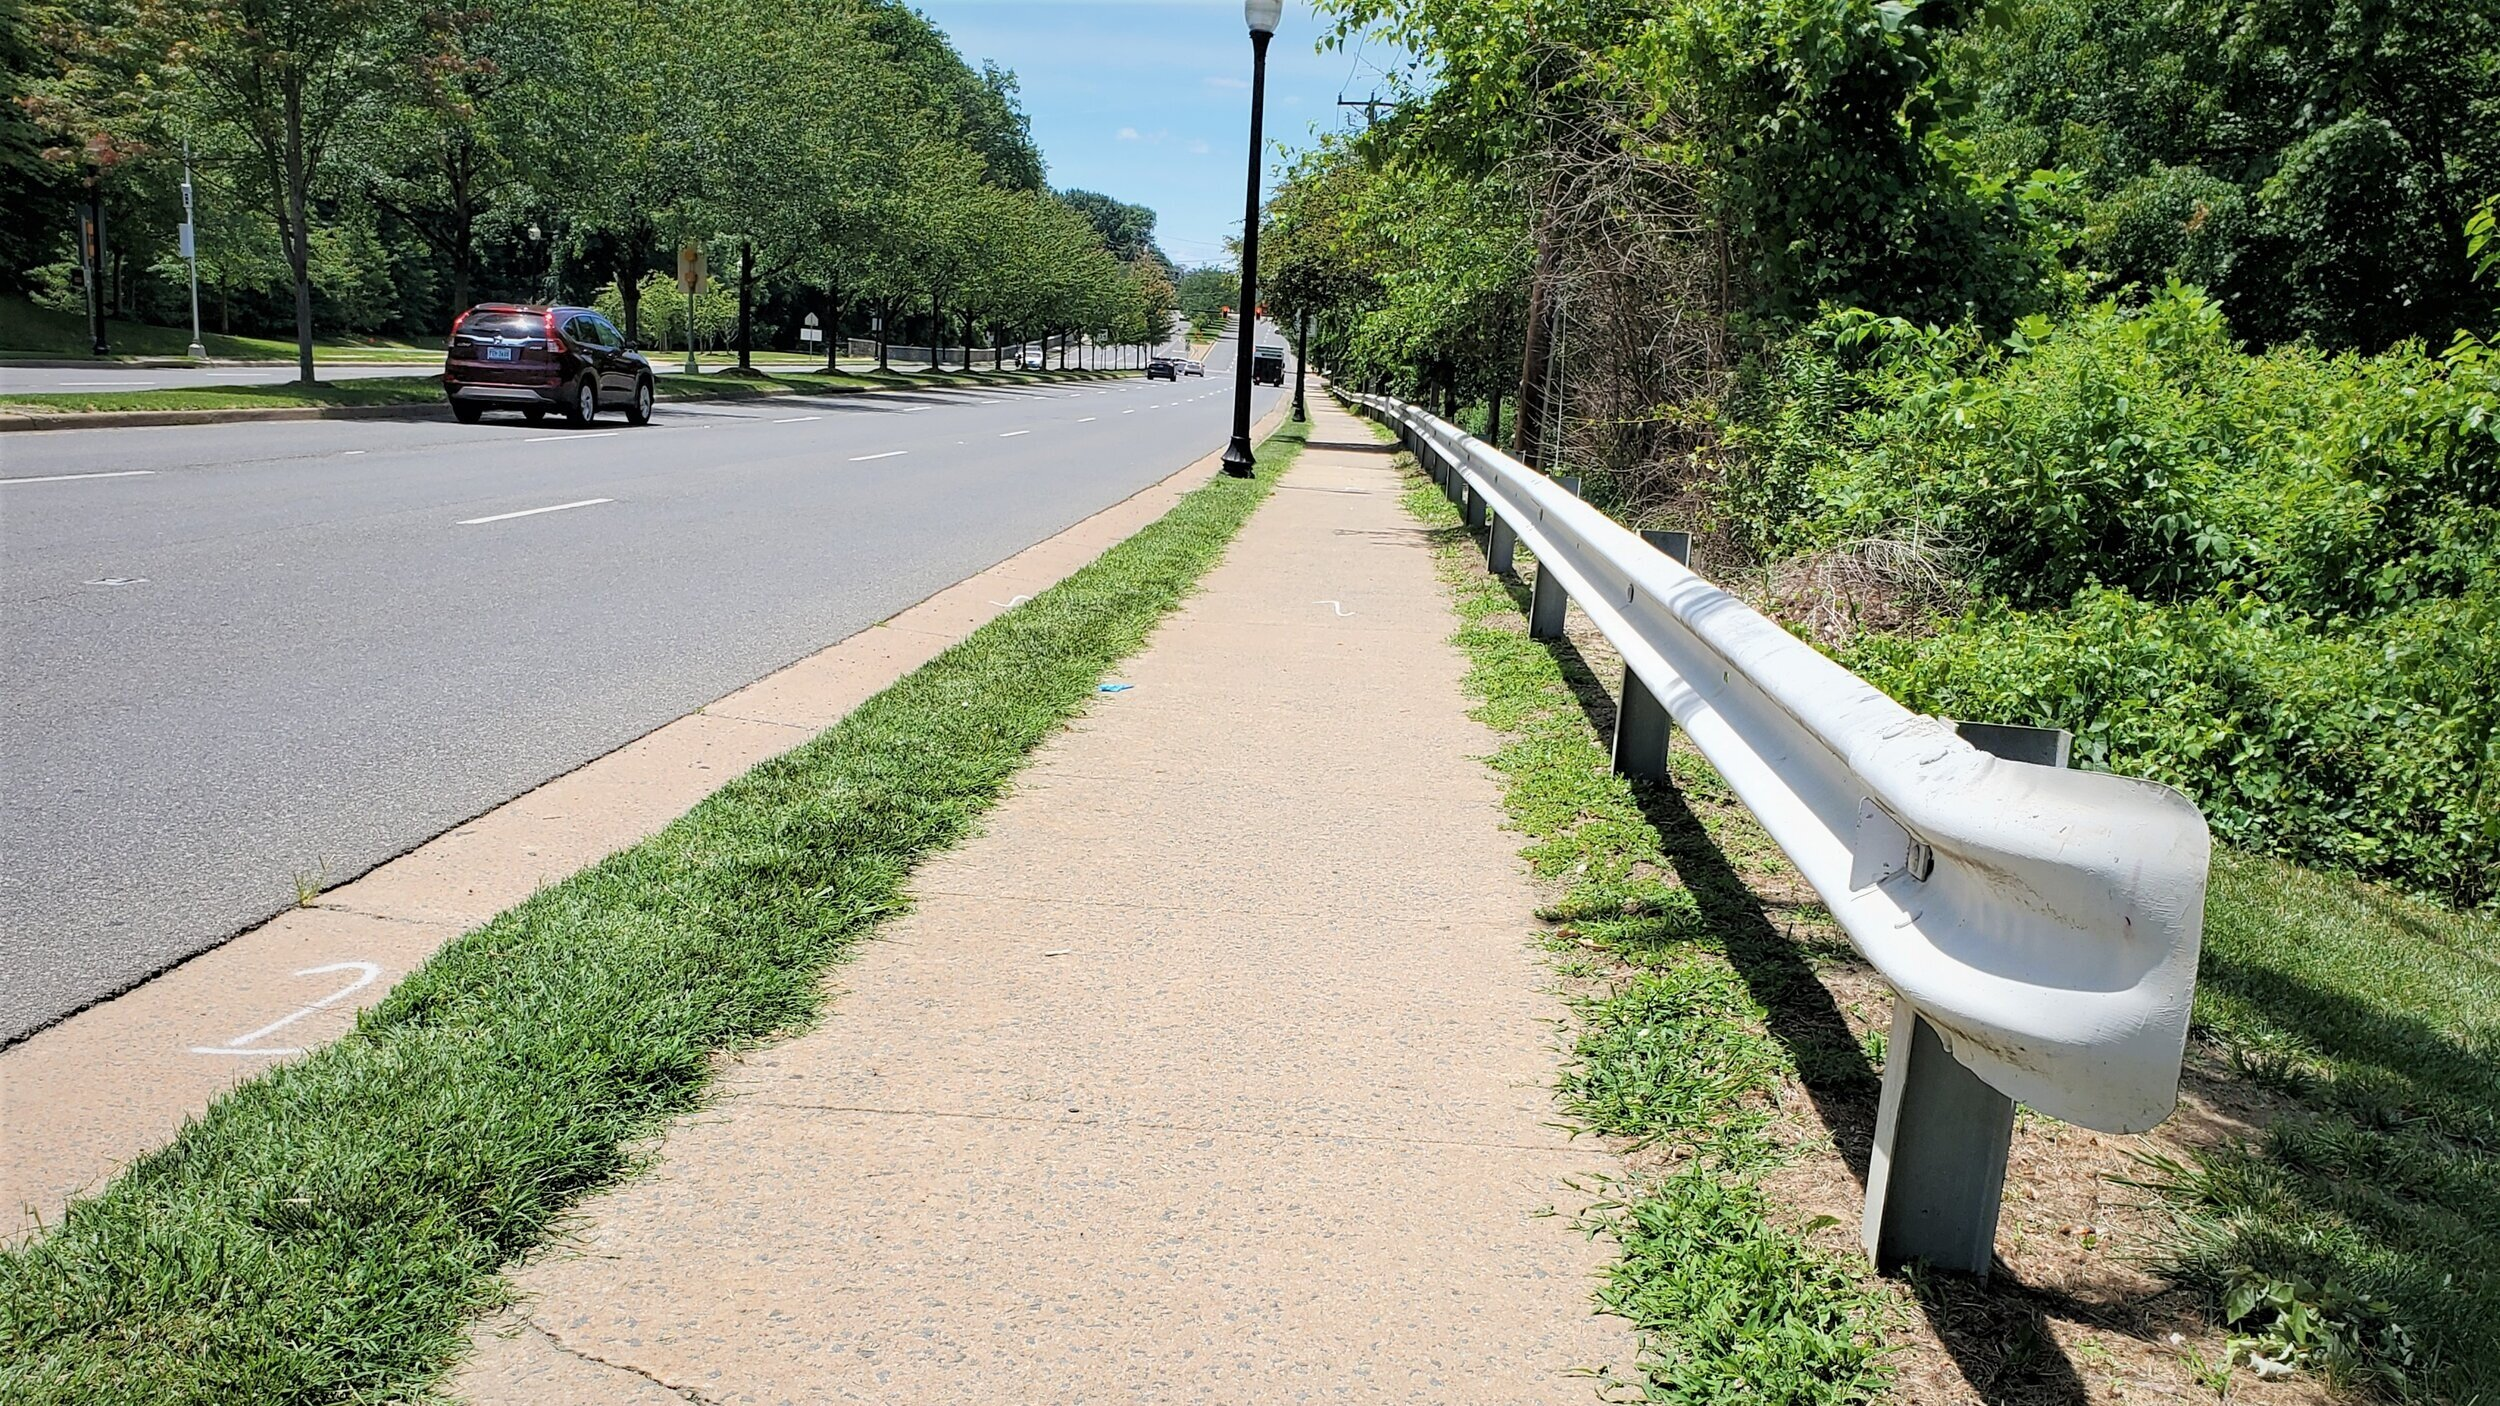 The guardrail's placement is technically correct, but it symbolizes the protection accorded to motorists and denied to other users of the road.